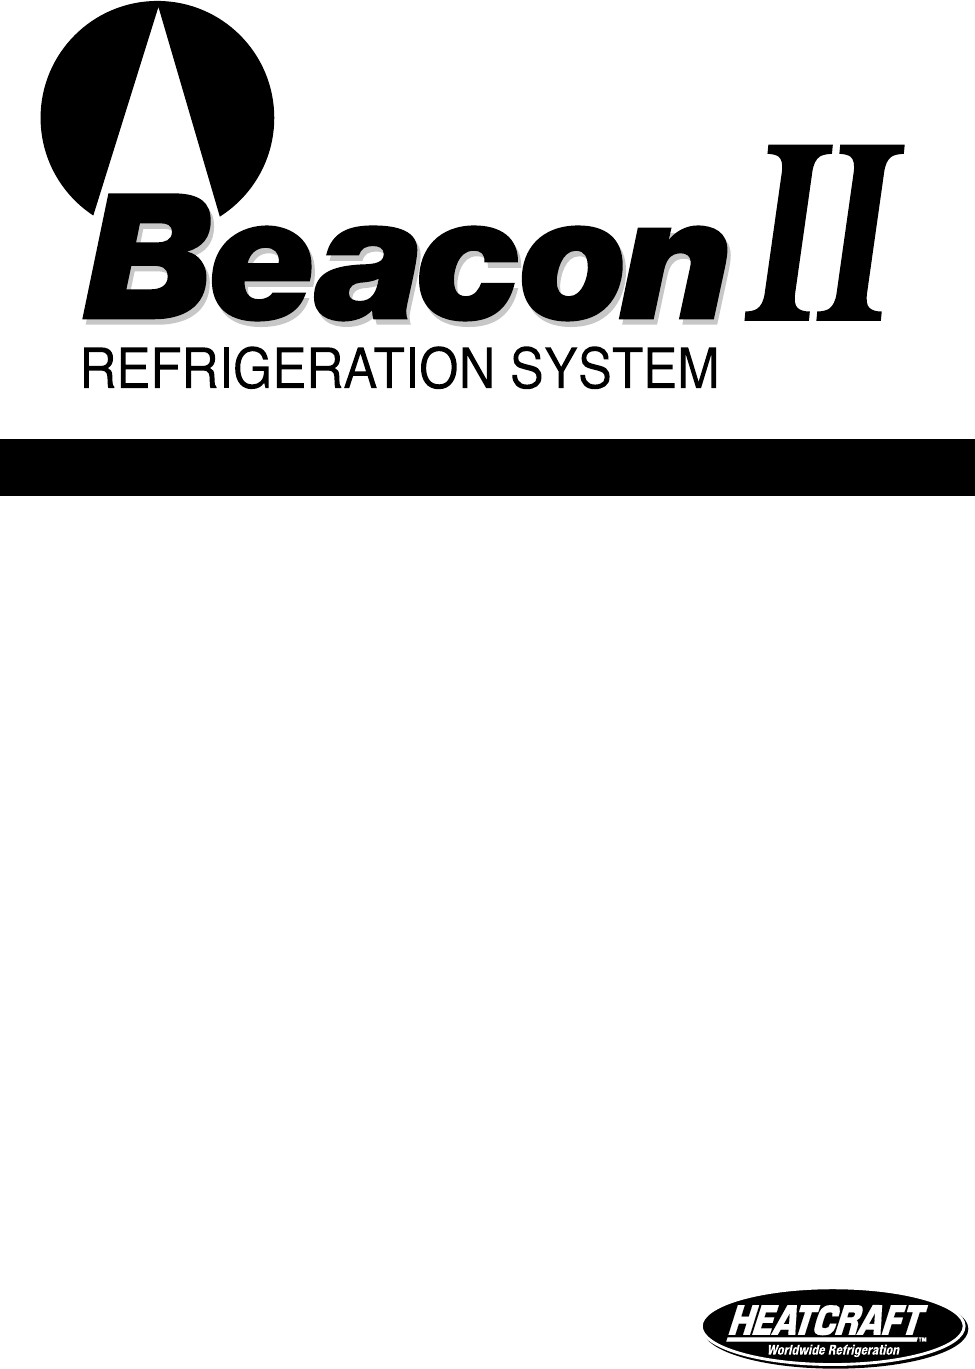 Heatcraft Refrigeration Products Refrigerator H-IM-79D